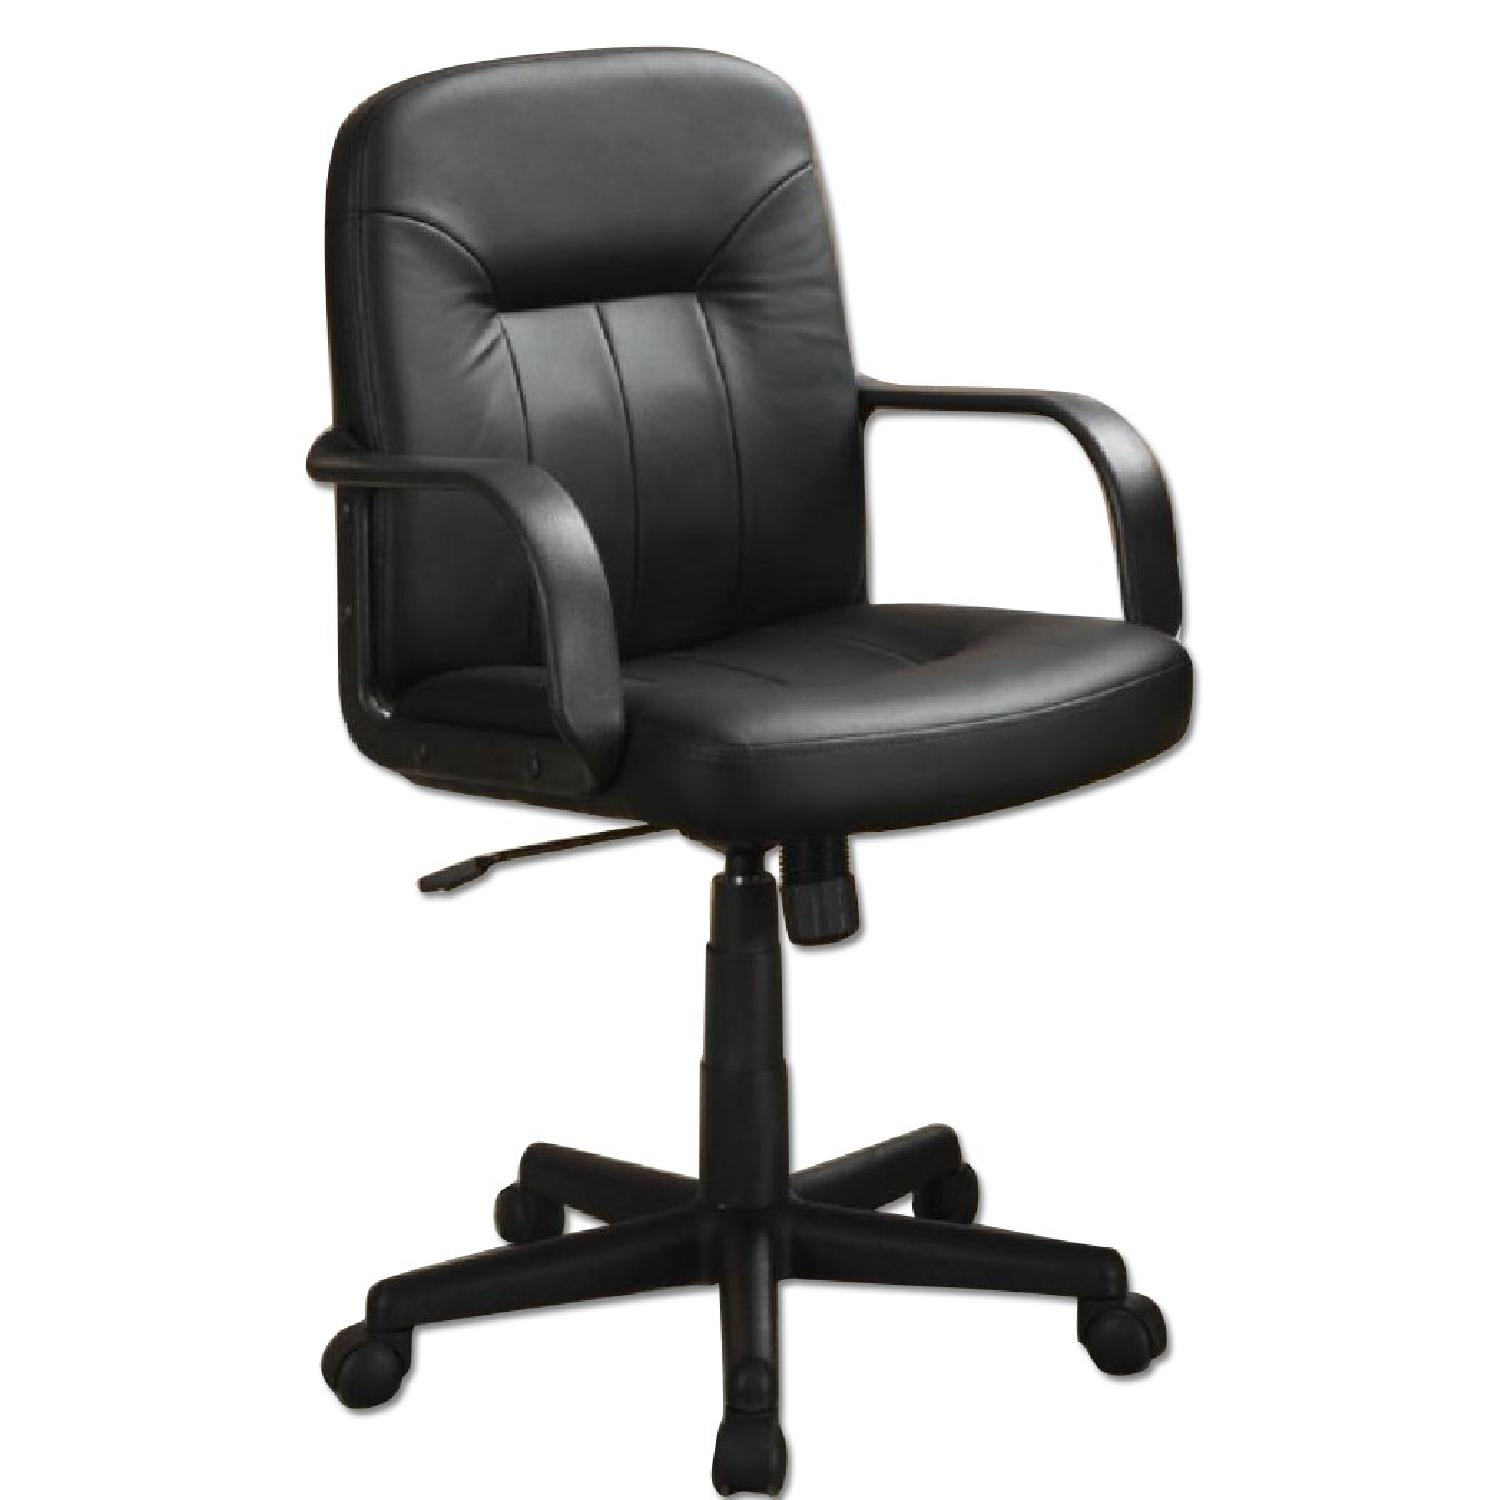 Office Chair in Leather-like Vinyl w/ Arm Rests - image-0